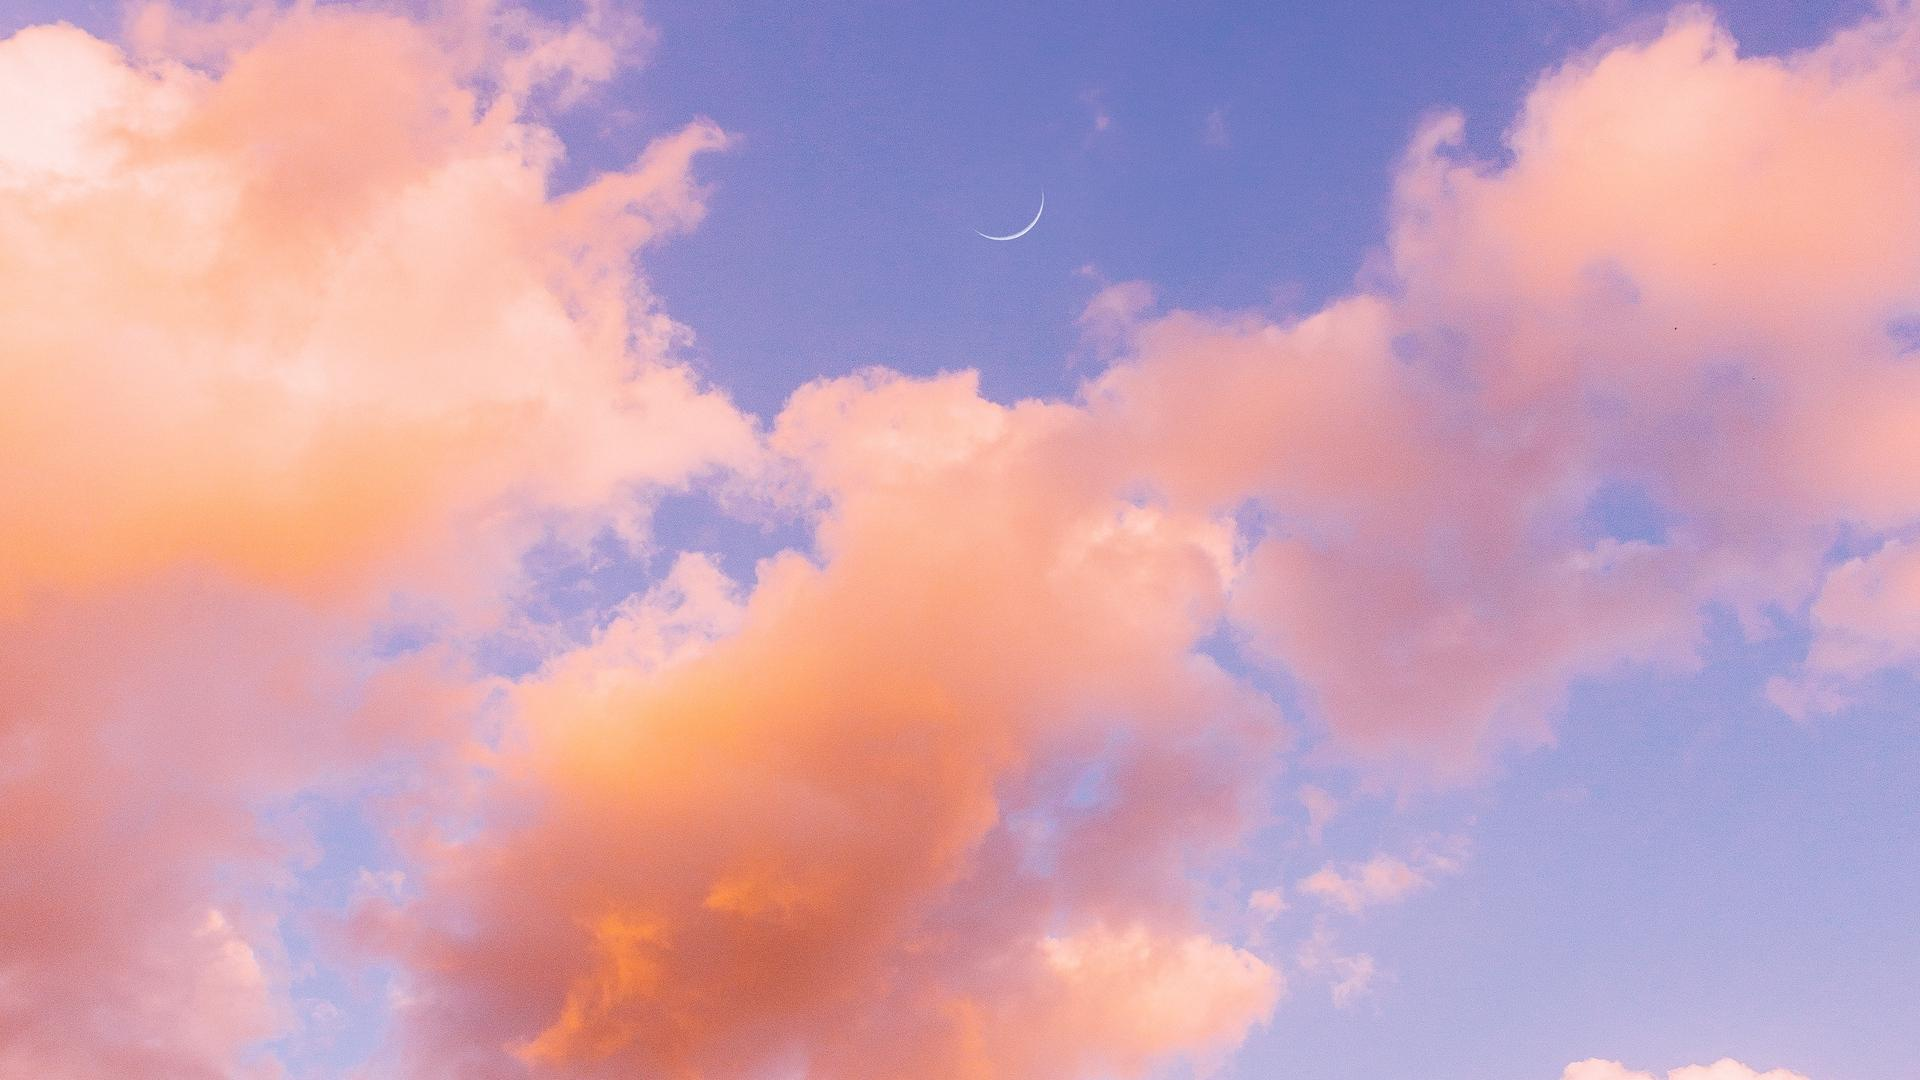 Aesthetic Cloud Pc Wallpapers Top Free Aesthetic Cloud Pc Backgrounds Wallpaperaccess